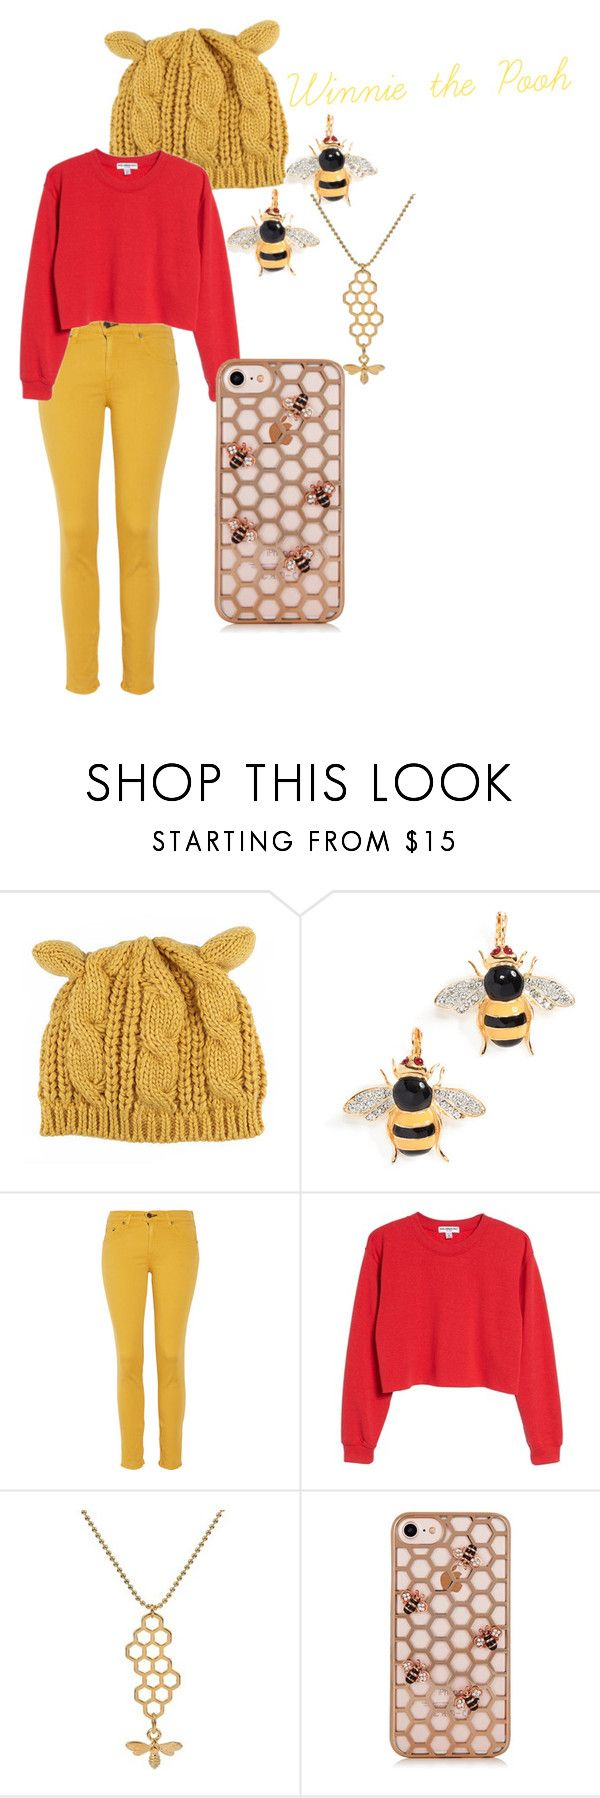 """Winnie the Pooh"" by hopeisobel on Polyvore featuring Kenneth Jay Lane, rag & bone and Sub_Urban Riot"